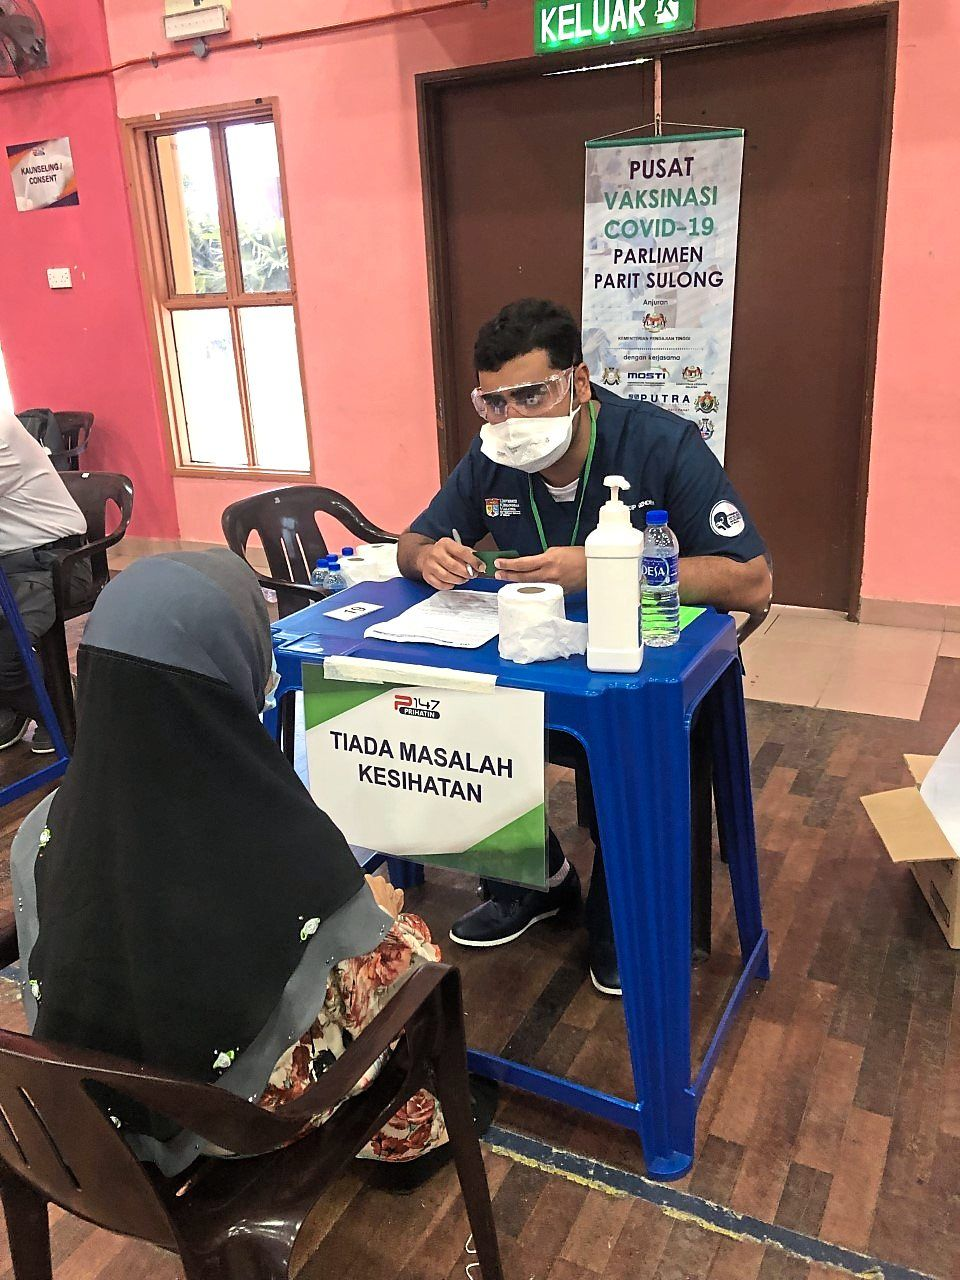 Dr Hardip assesses a woman at the satellite vaccination centre in MRSM Batu Pahat.